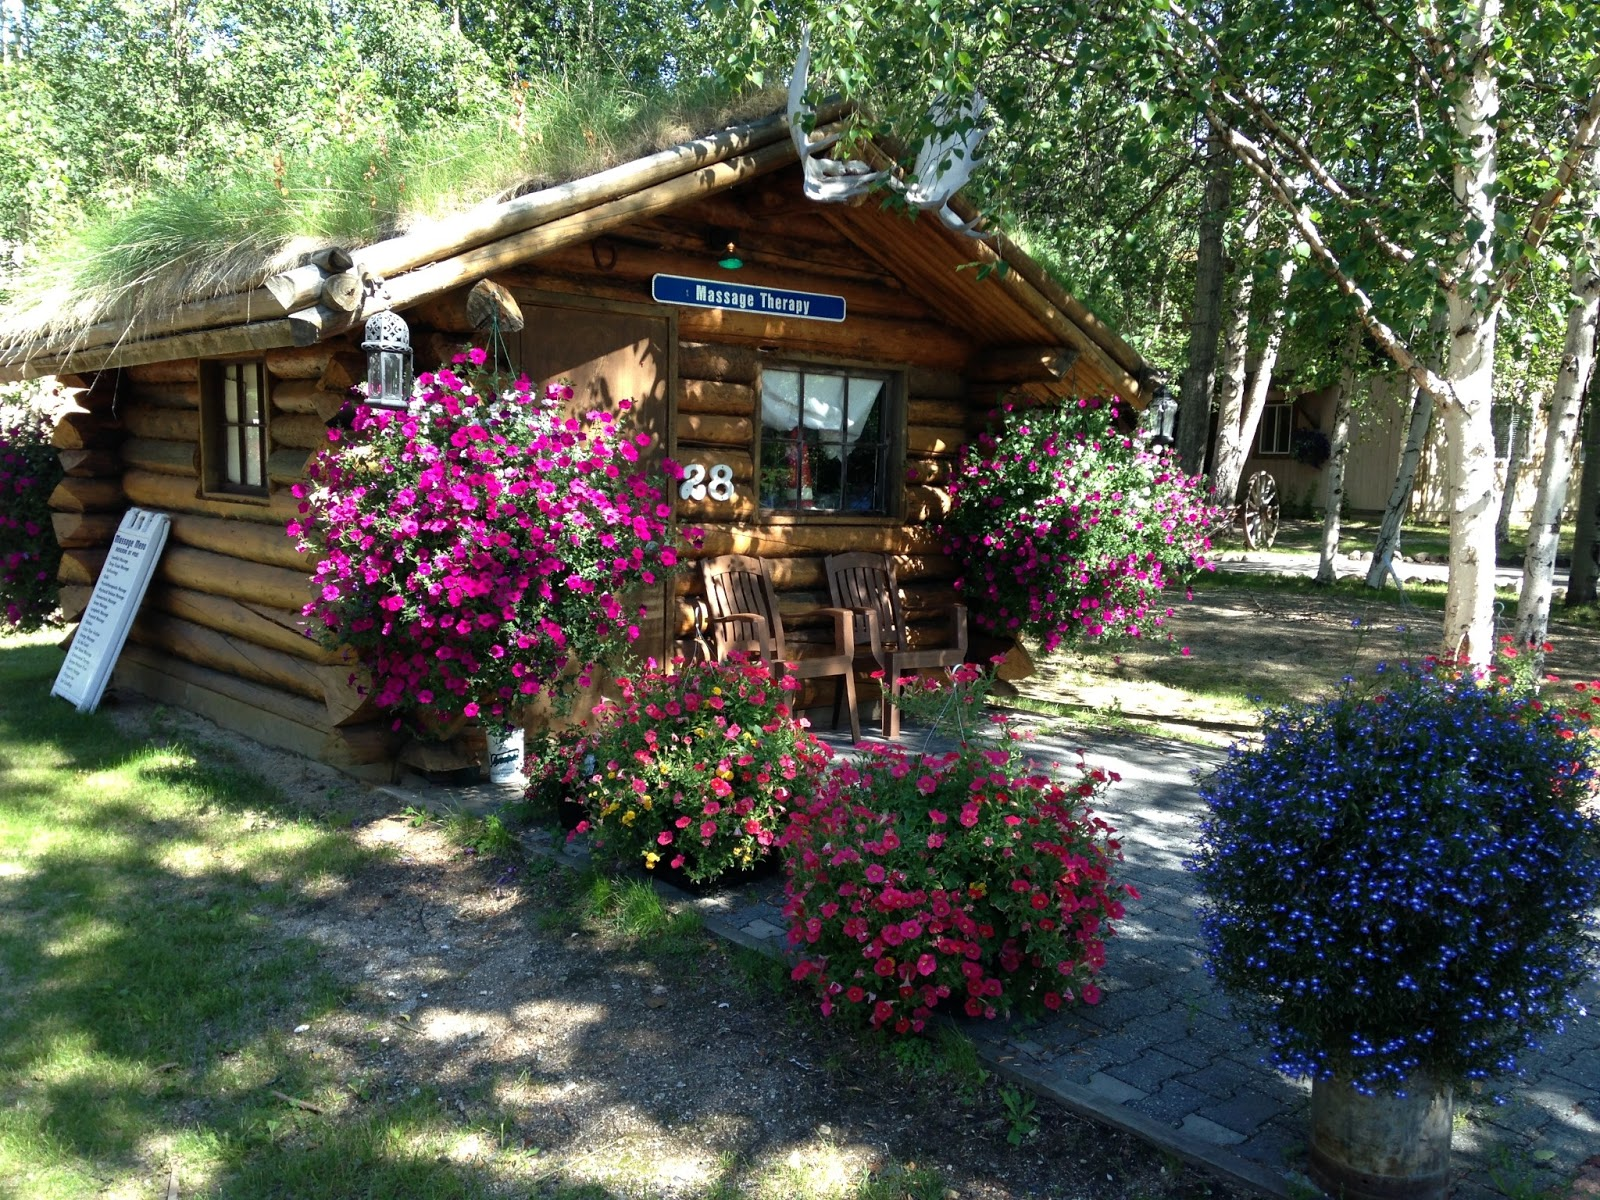 My vagabond year denali national park chena hot springs ice museum this is one of the out buildings at the hot springs the sign says massage therapy arent those flower baskets the biggest and most beautiful youve ever mightylinksfo